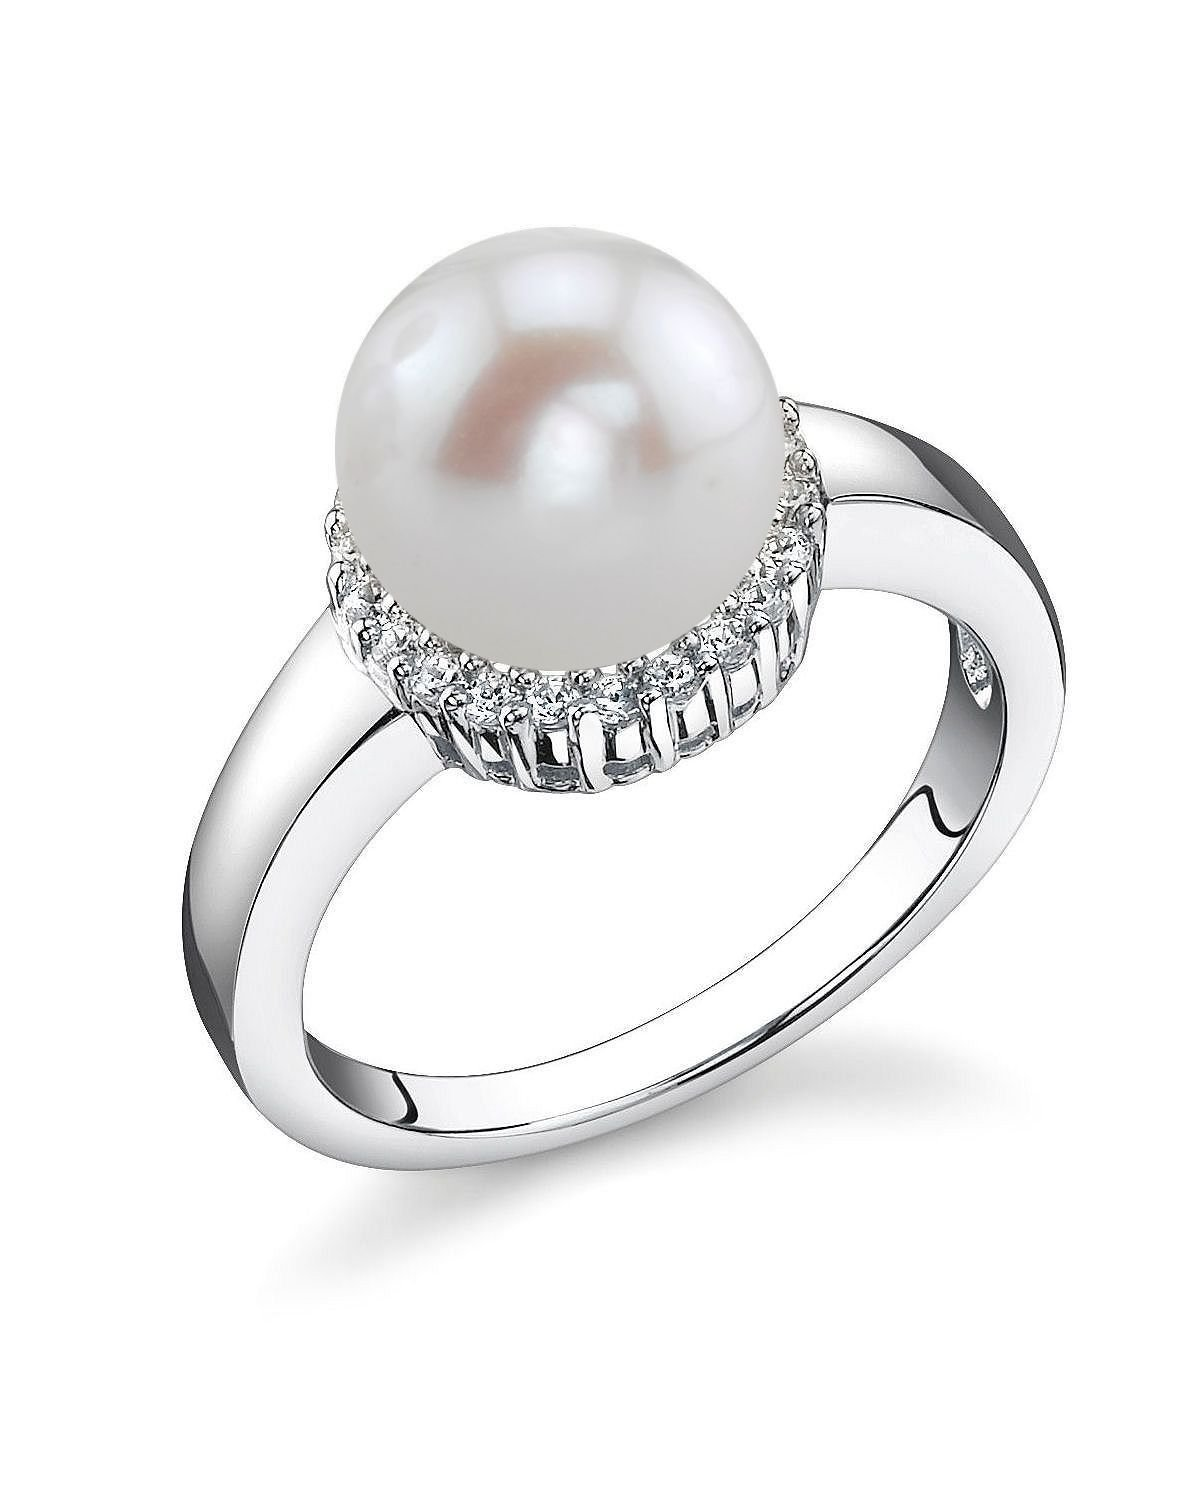 8mm White Freshwater Cultured Pearl Ashley Ring